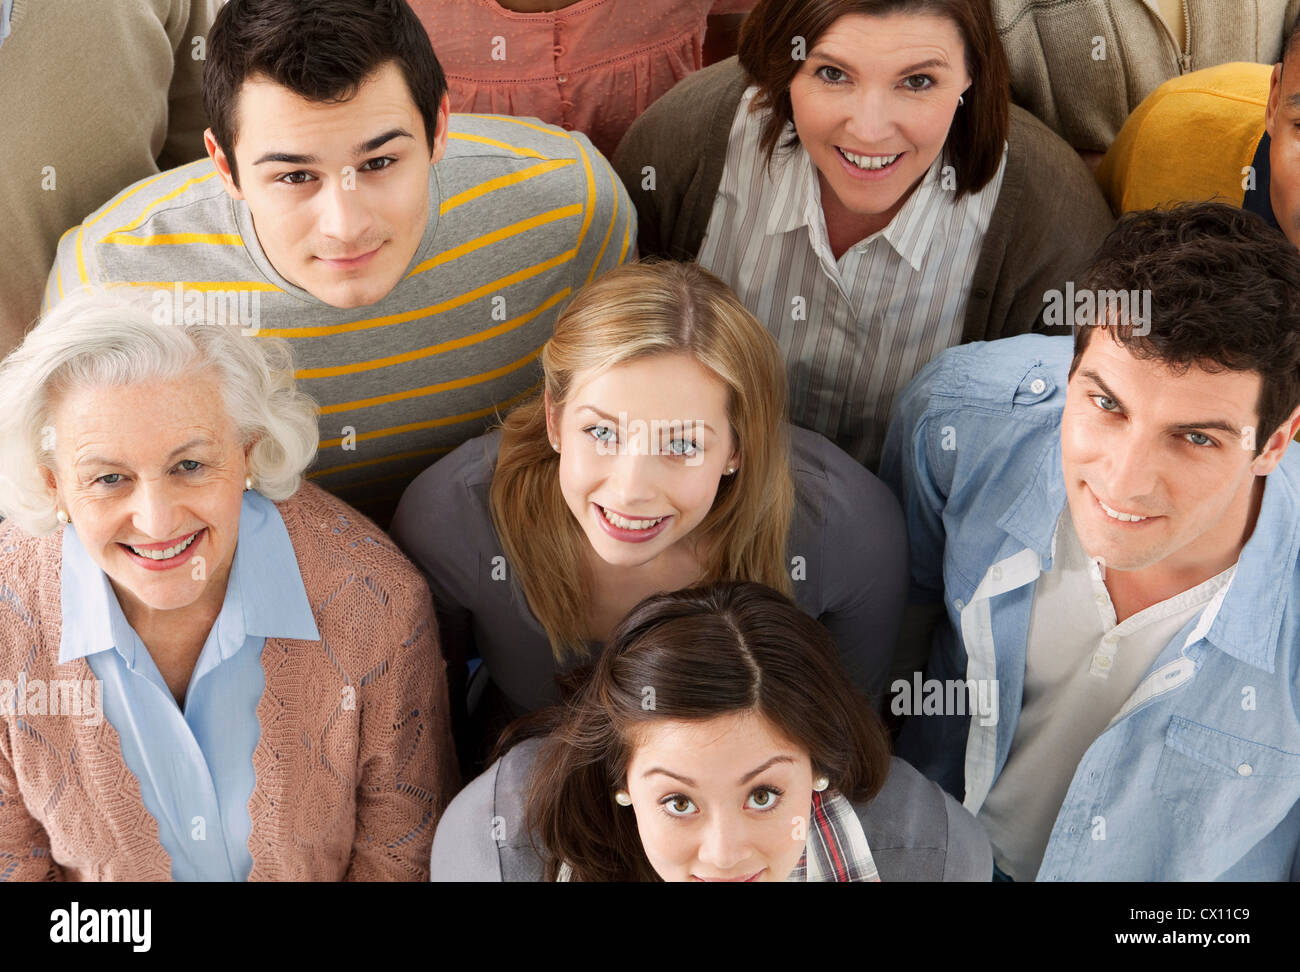 Group of people looking at camera, high angle - Stock Image